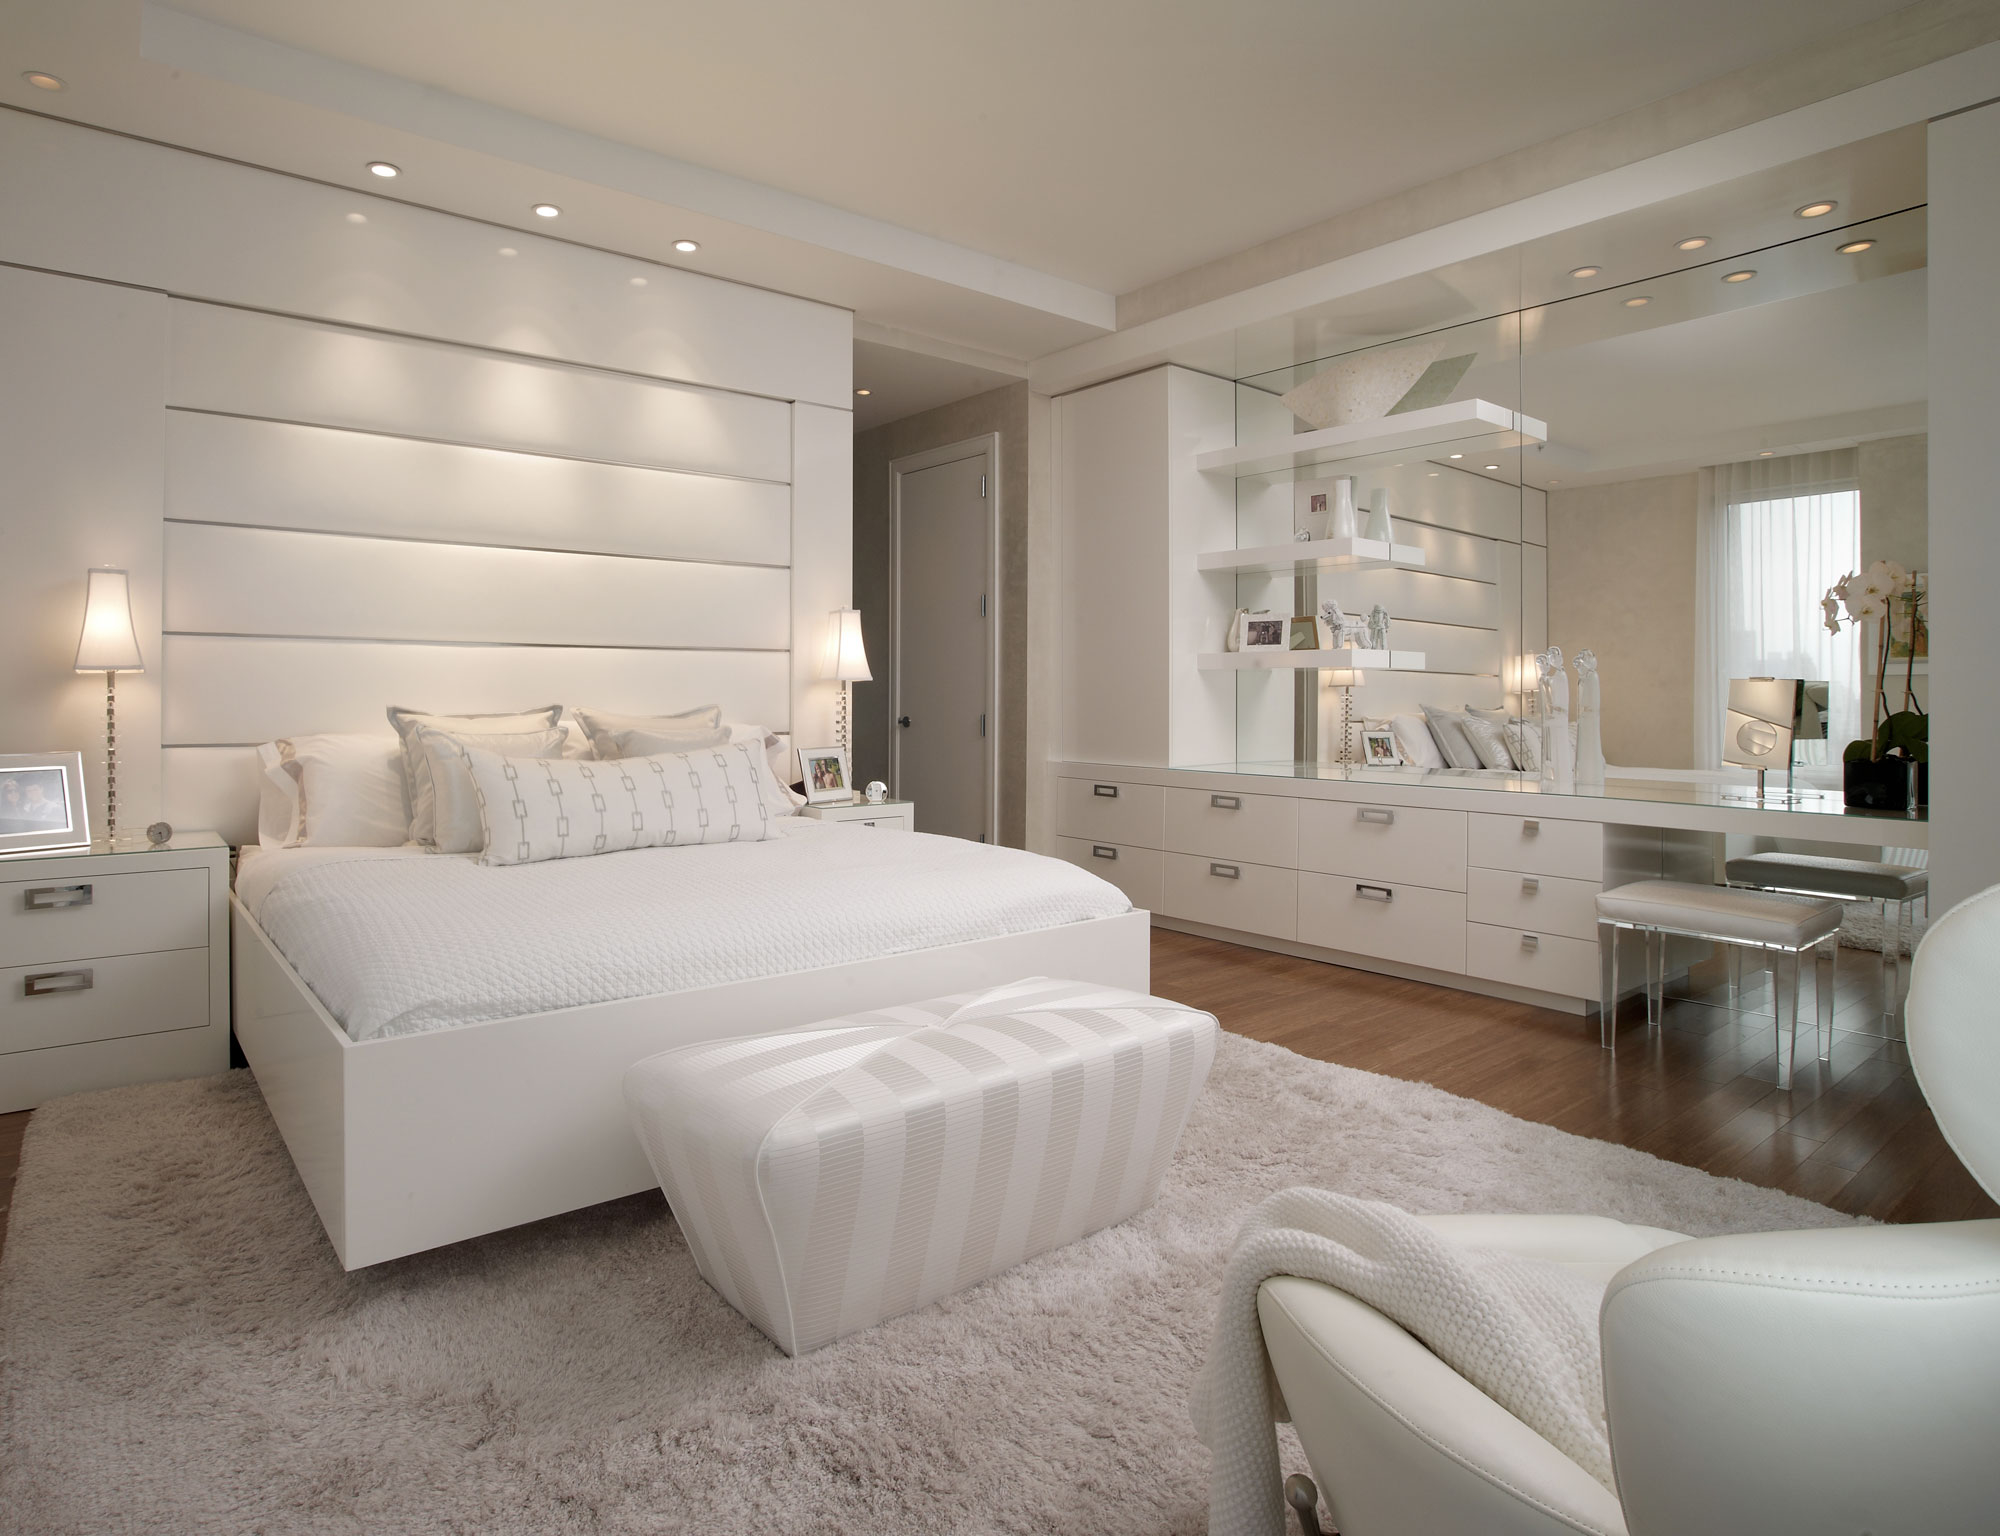 Glamorous Bedroom Luxury Look (Image 6 of 9)